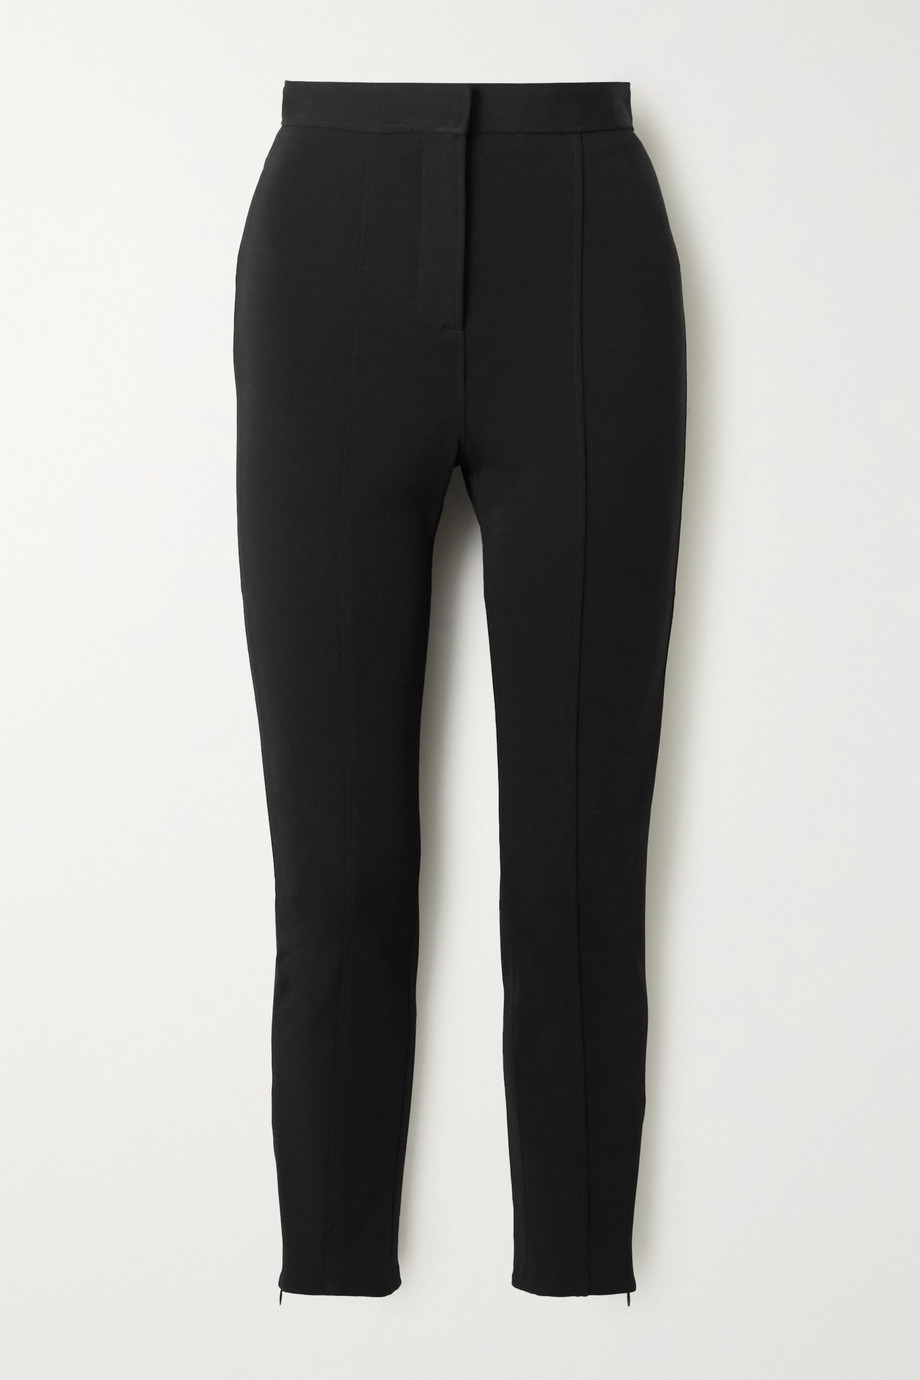 Altuzarra Buddy stretch-cady skinny pants